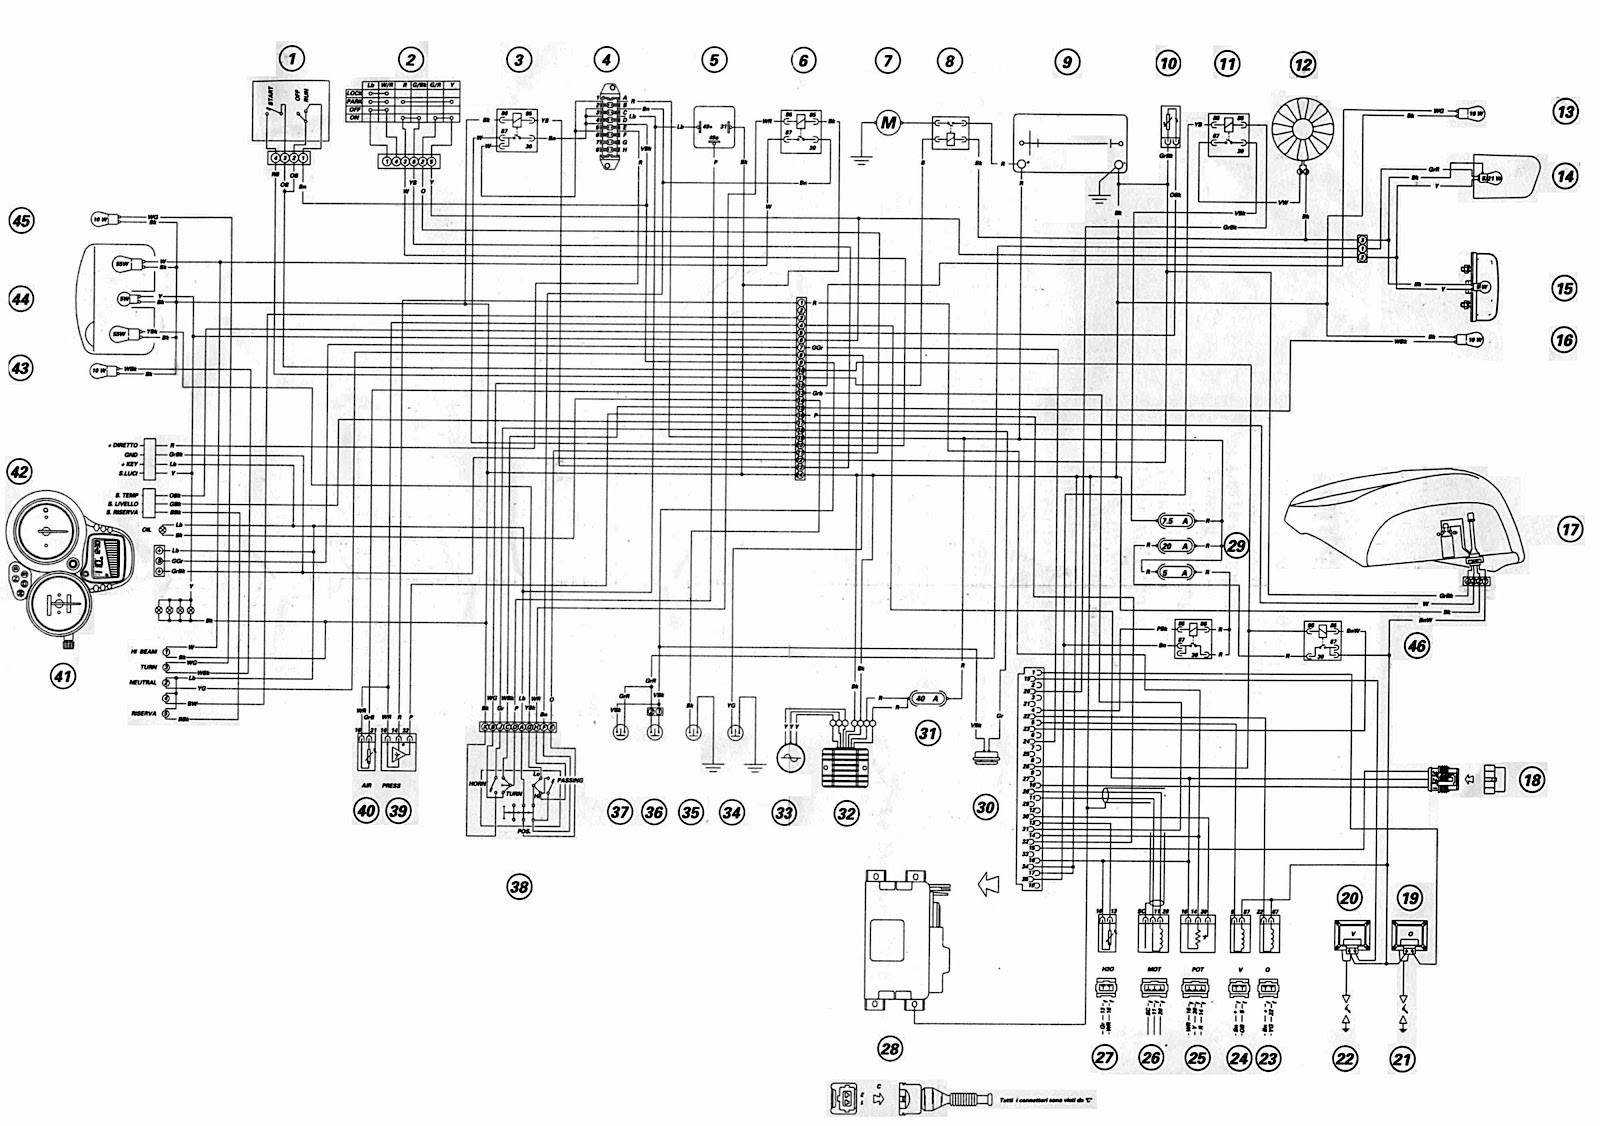 2004 gsxr 600 headlight wiring diagram somurich com wiring diagram 2001 gsxr 600 2004 gsxr 600 headlight wiring diagram wiring diagram for 2002 suzuki gsxr 600rh svlc